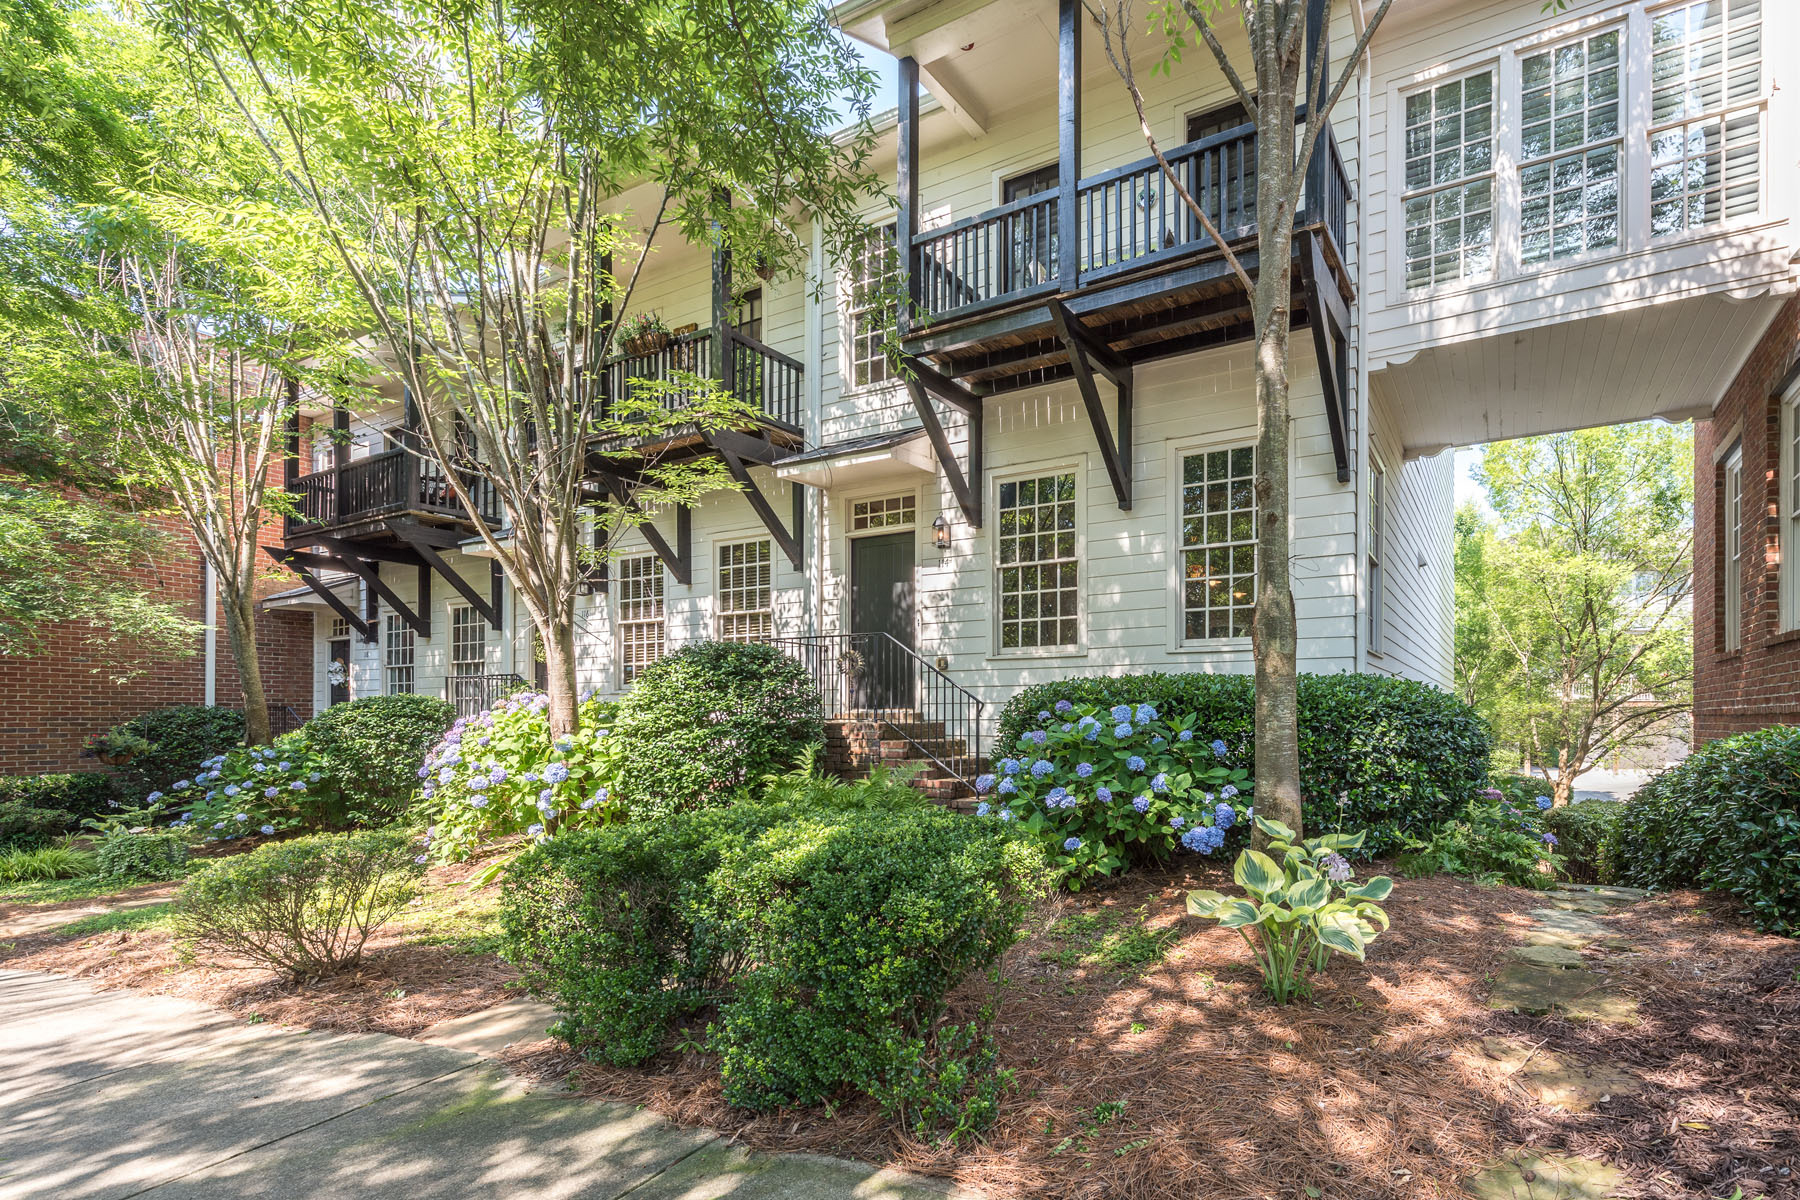 Townhouse for Sale at Exceptional Downtown Woodstock Townhouse 114 Hubbard Road Woodstock, Georgia 30188 United States